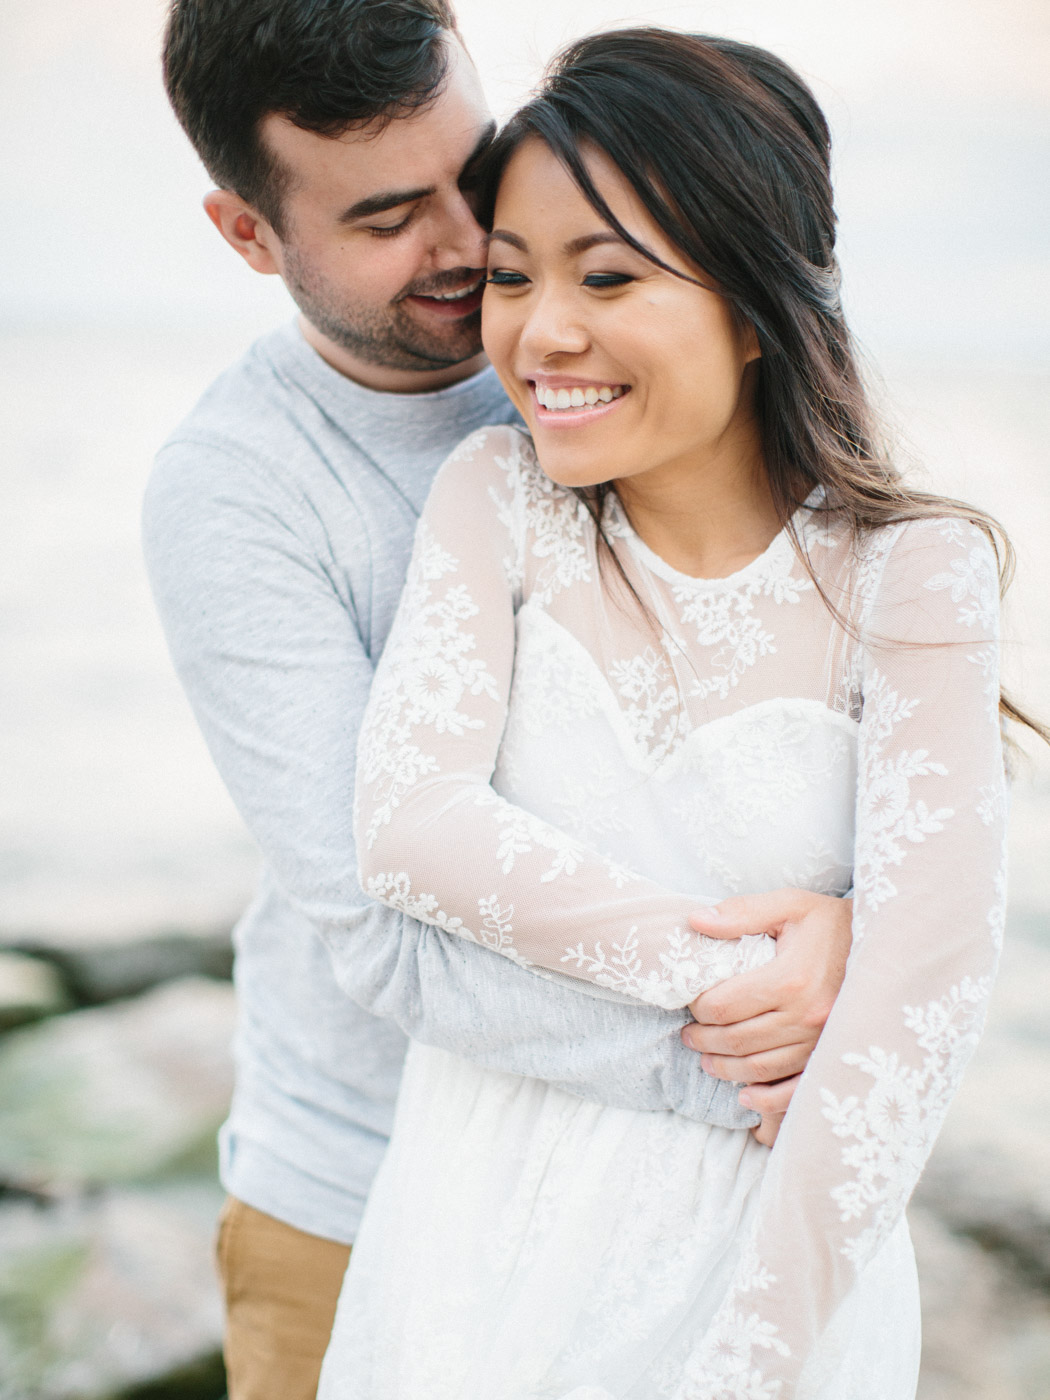 toronto_wedding_photographer_engagement_photography_tips-51.jpg